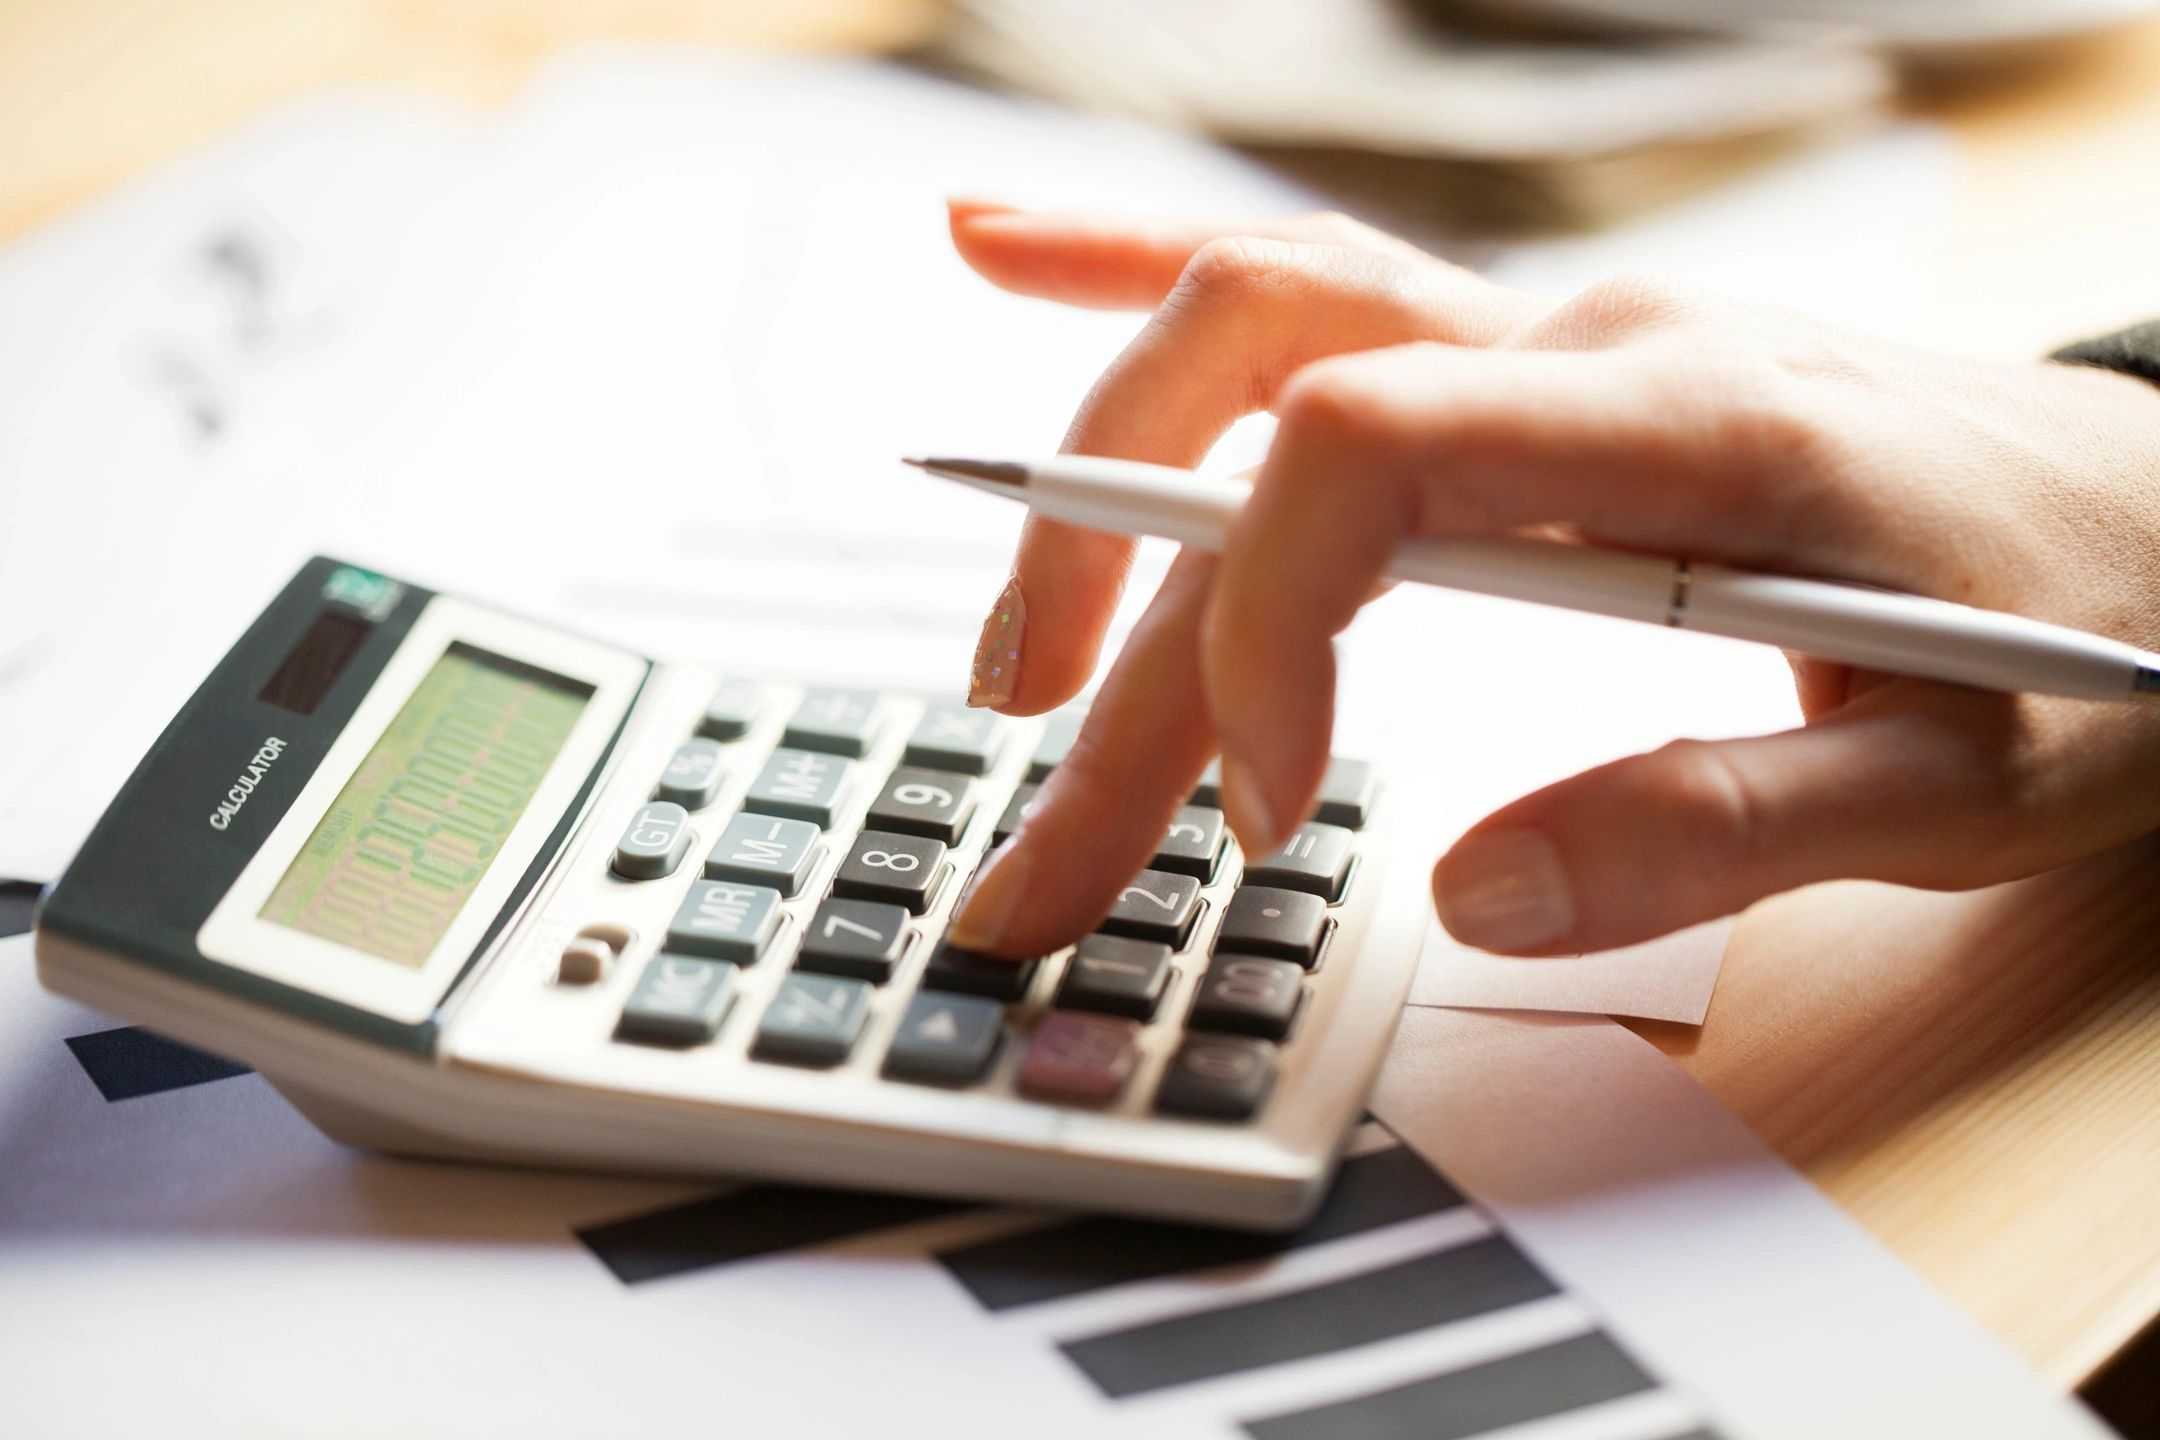 Term deposits and investments